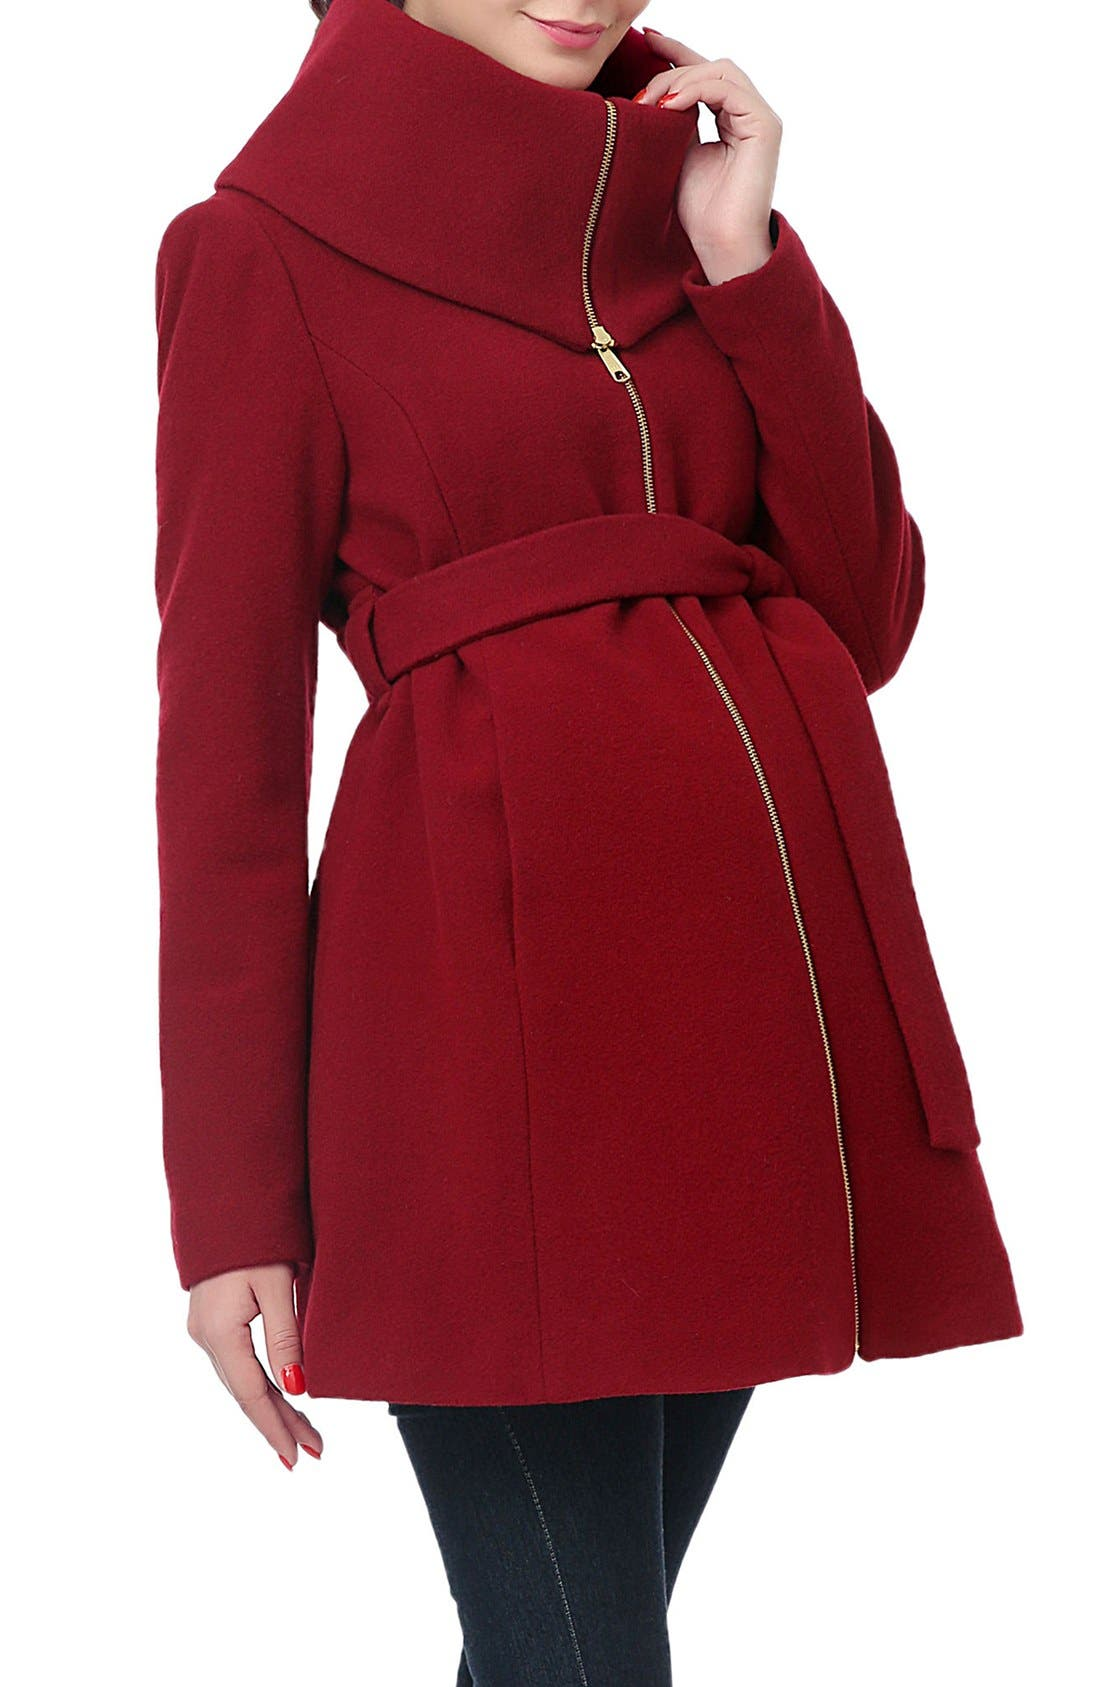 'Mia' High Collar Maternity Coat,                             Main thumbnail 1, color,                             Wine